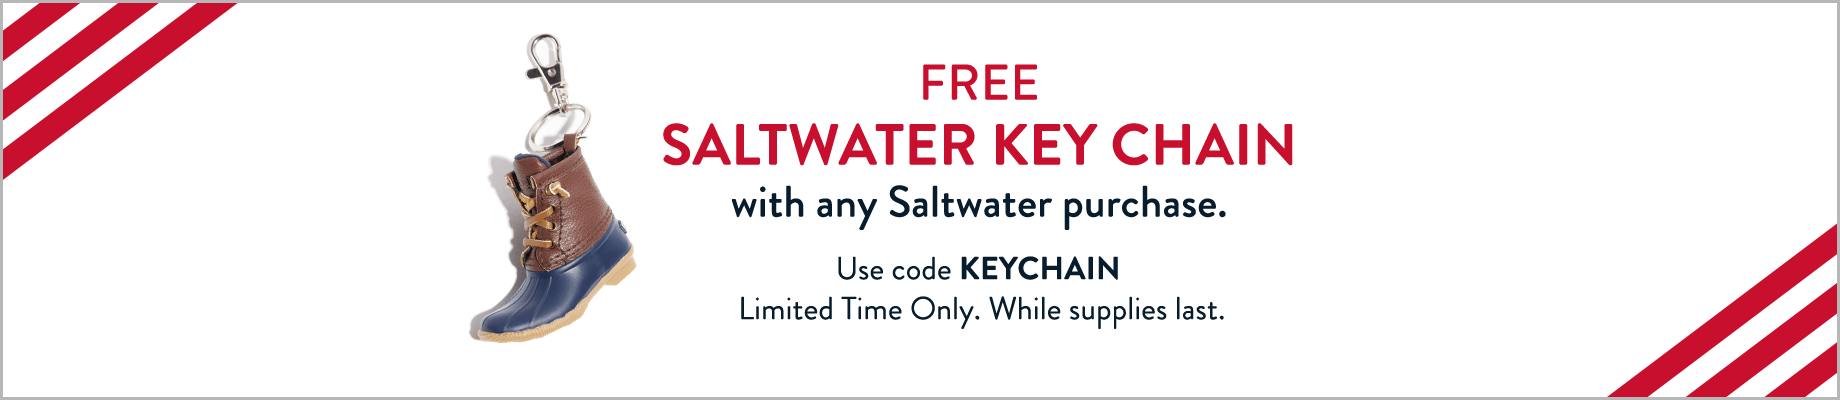 FREE Saltwater Key Chain with any Saltwater purchase | Use code KEYCHAIN | Limited Time Only. While supplies last.